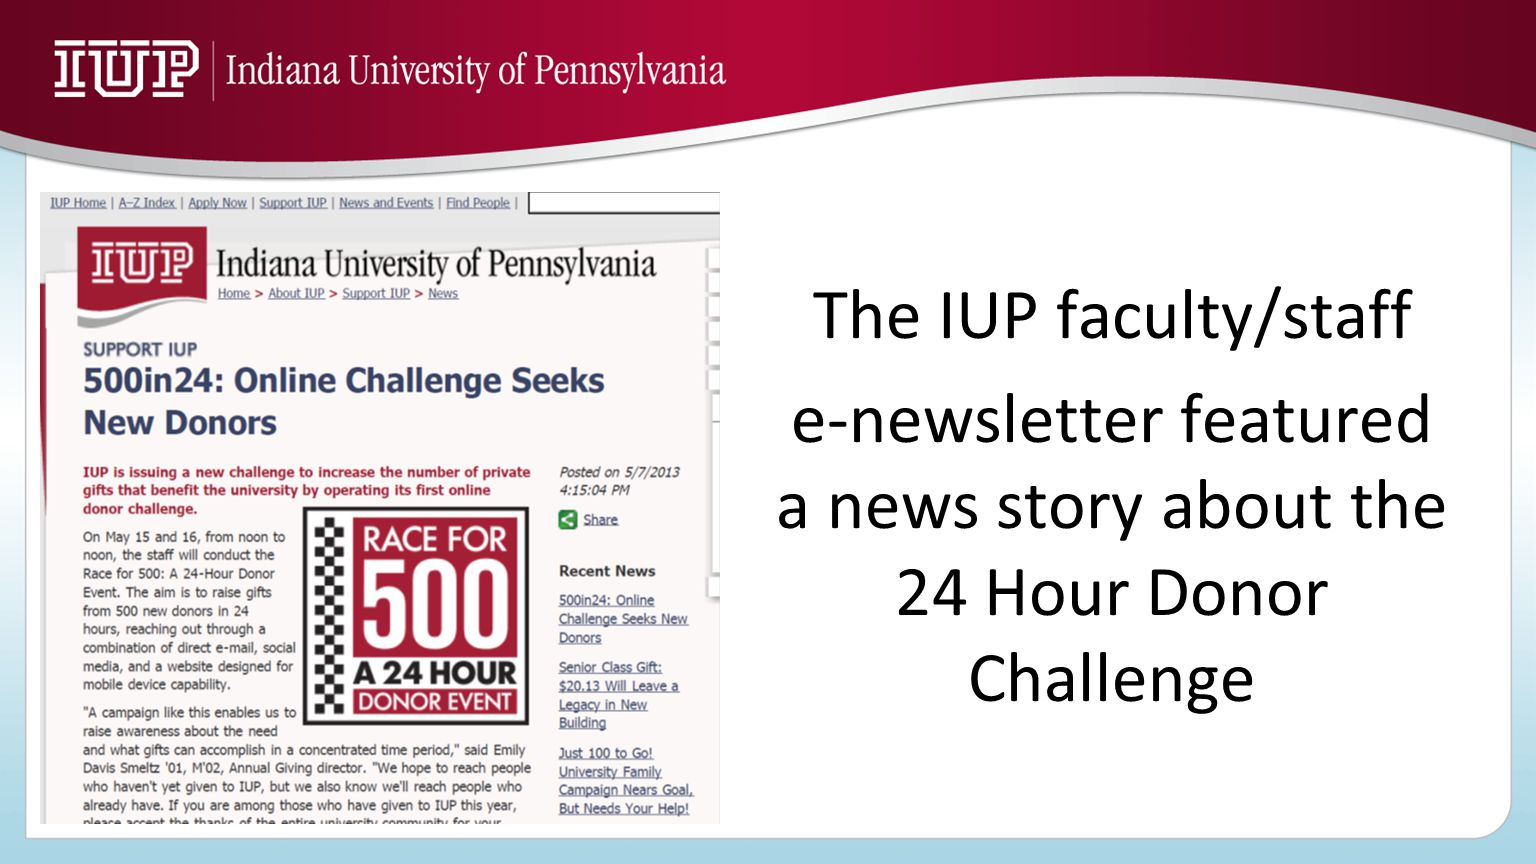 The IUP faculty/staff e-newsletter featured a news story about the 24 Hour Donor Challenge